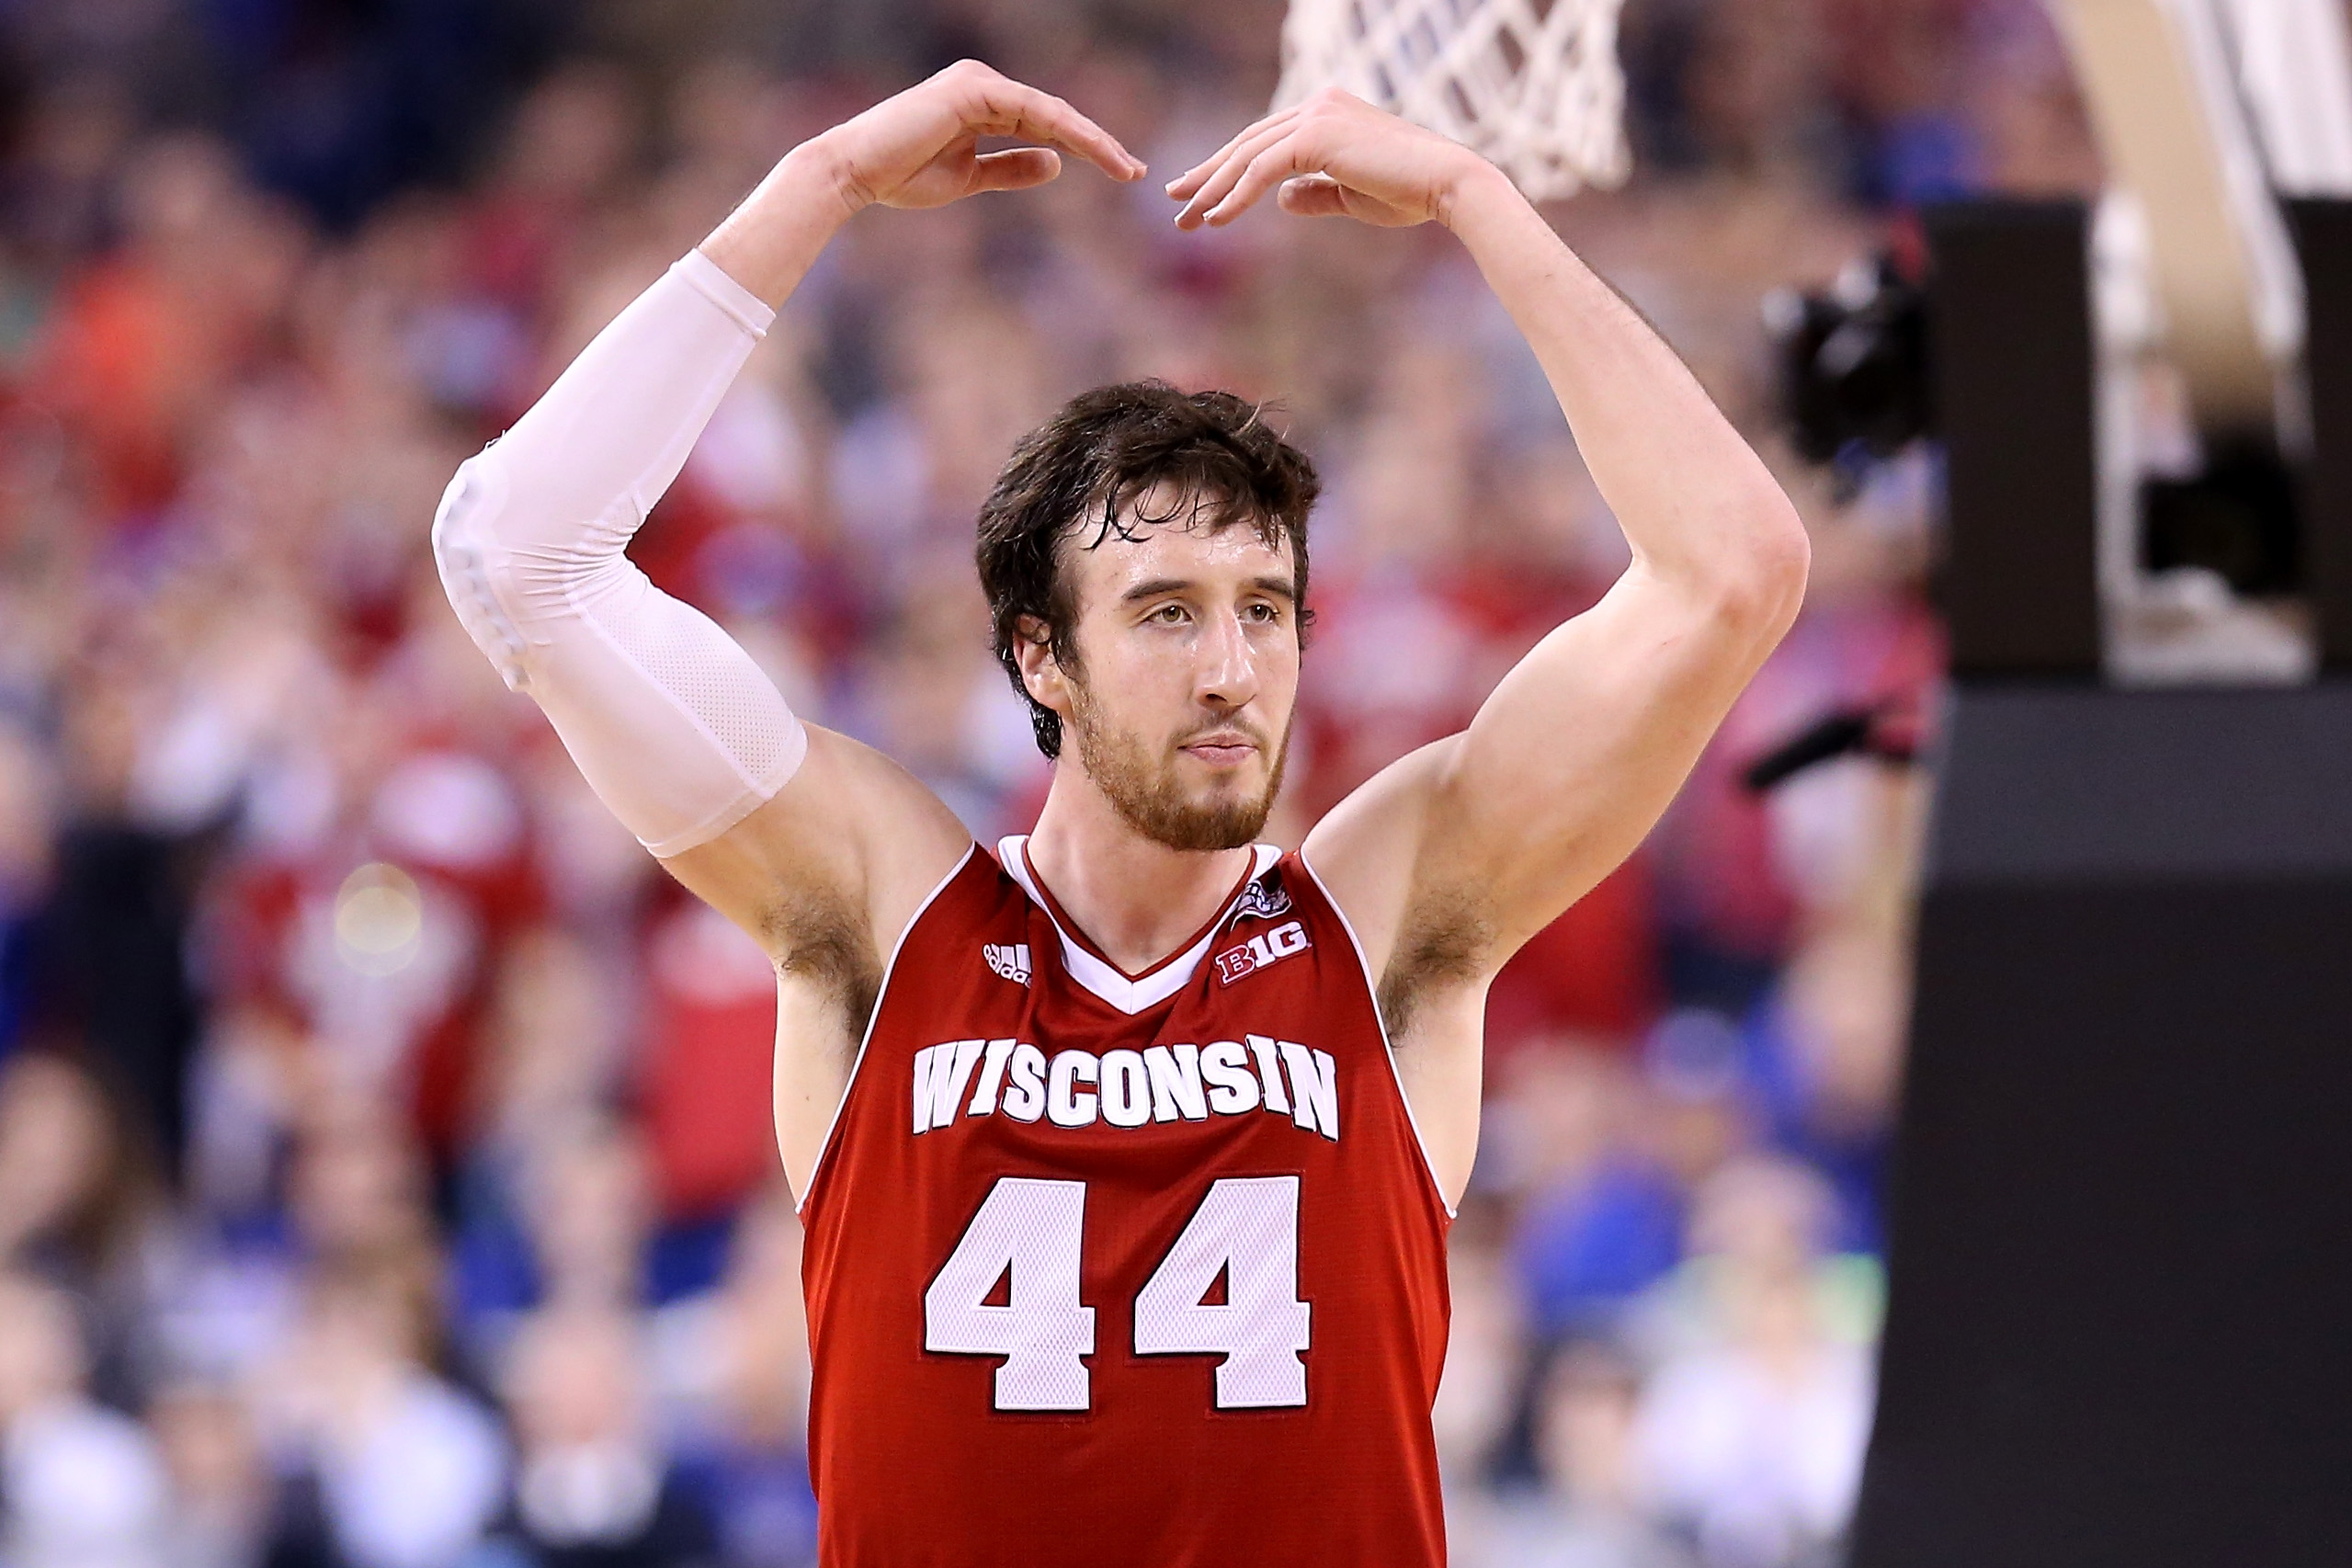 INDIANAPOLIS, IN - APRIL 06: Frank Kaminsky #44 of the Wisconsin Badgers reacts after a play in the second half against the Duke Blue Devils during the NCAA Men's Final Four National Championship at Lucas Oil Stadium on April 6, 2015 in Indianapolis, Indiana.  (Photo by Streeter Lecka/Getty Images) ORG XMIT: 527066925 ORIG FILE ID: 468767788